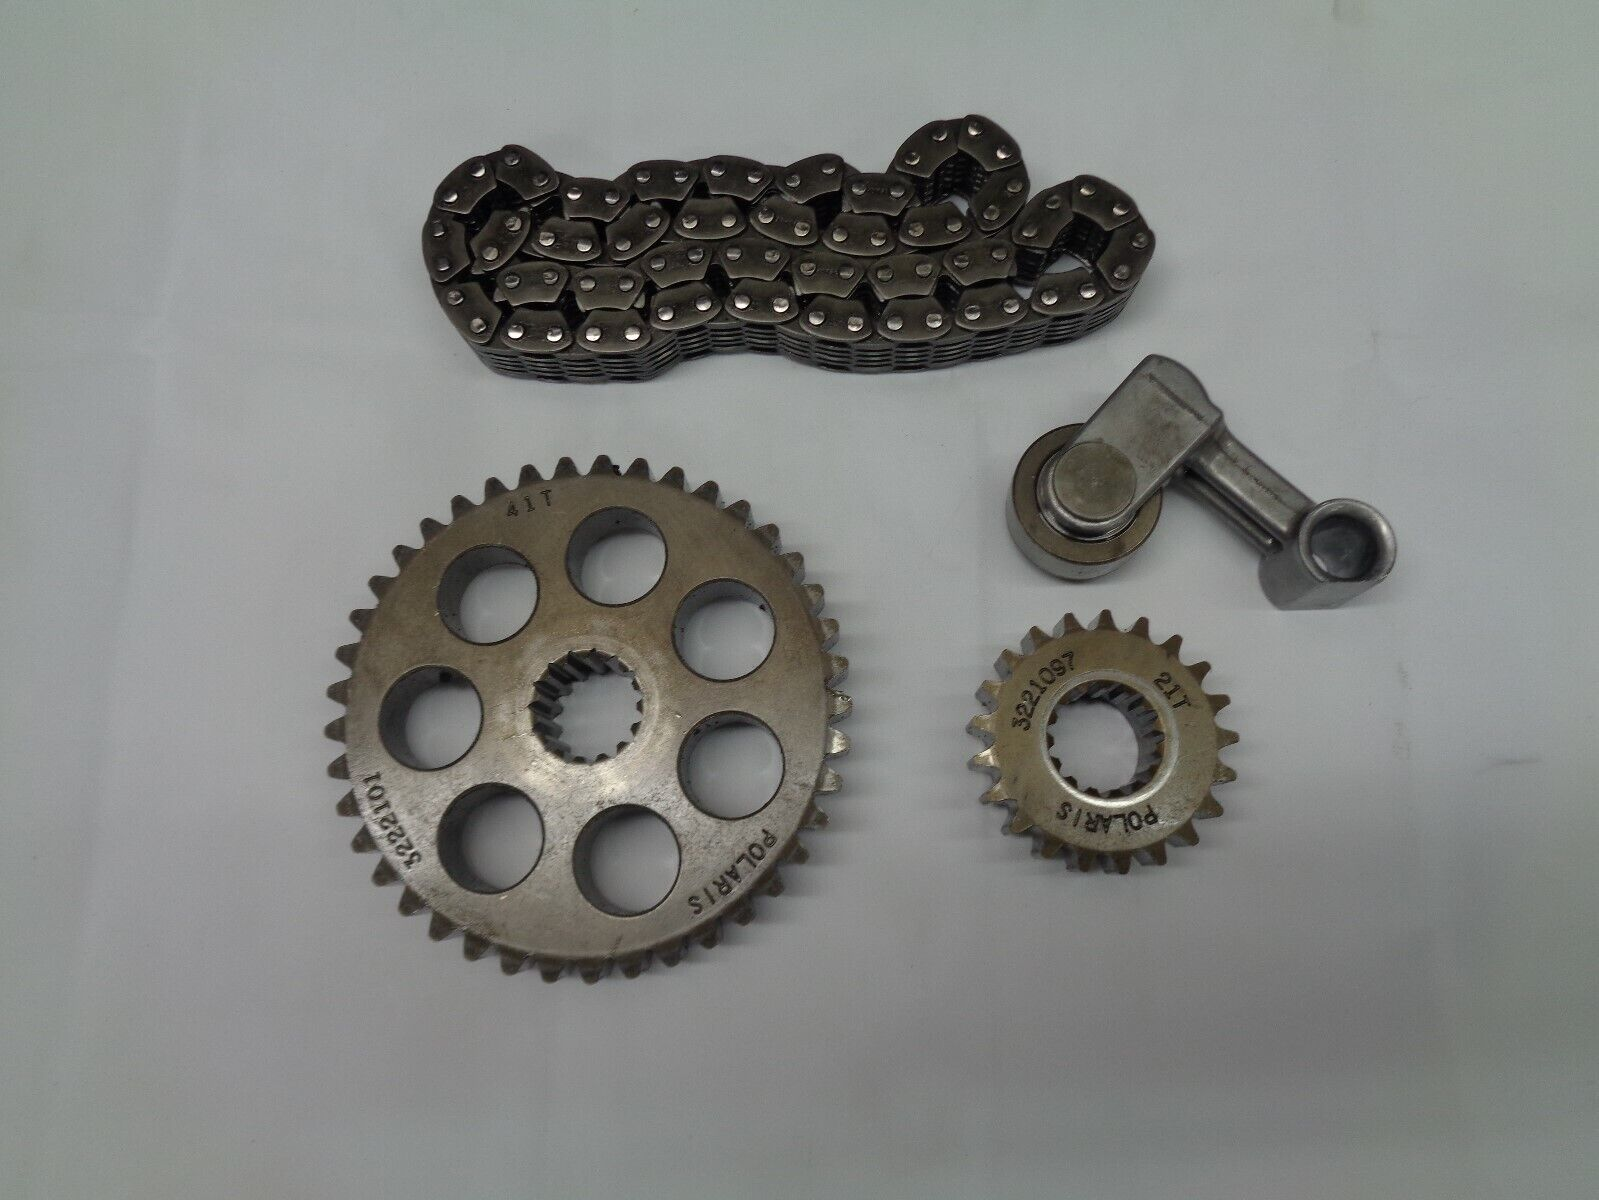 2002-2005 polaris RMK EDGE 800 gears 21T 41 and chain  3221109  3222101  3221097